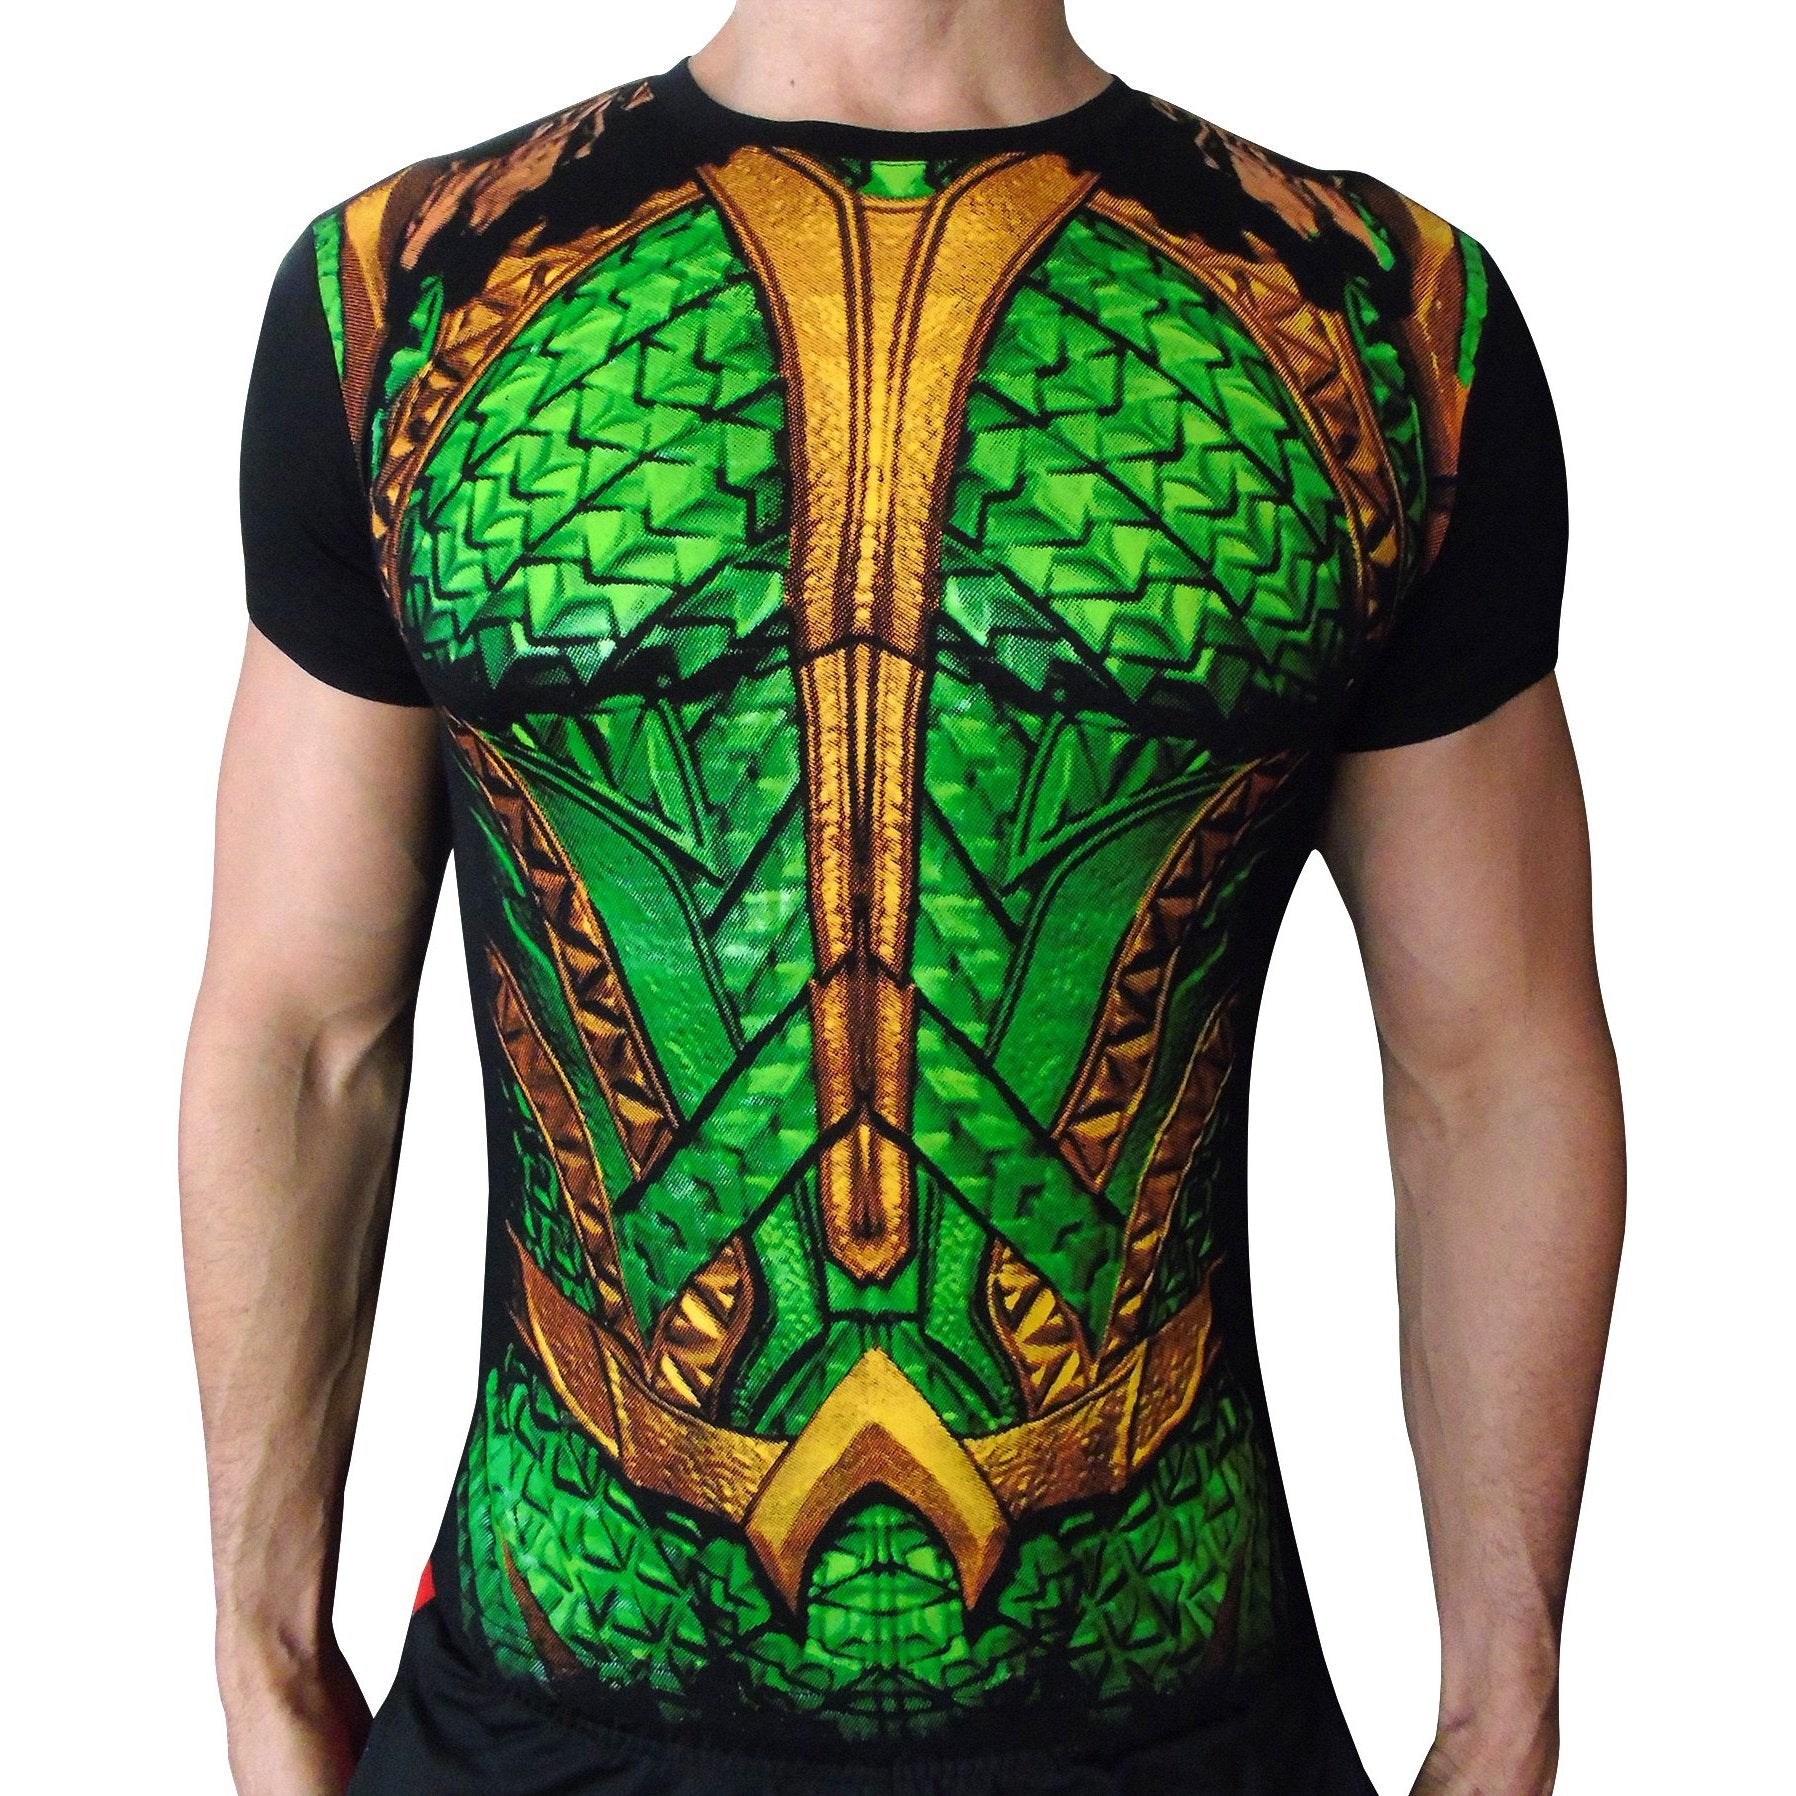 Aquaman Origins t-shirt SugarCane1977